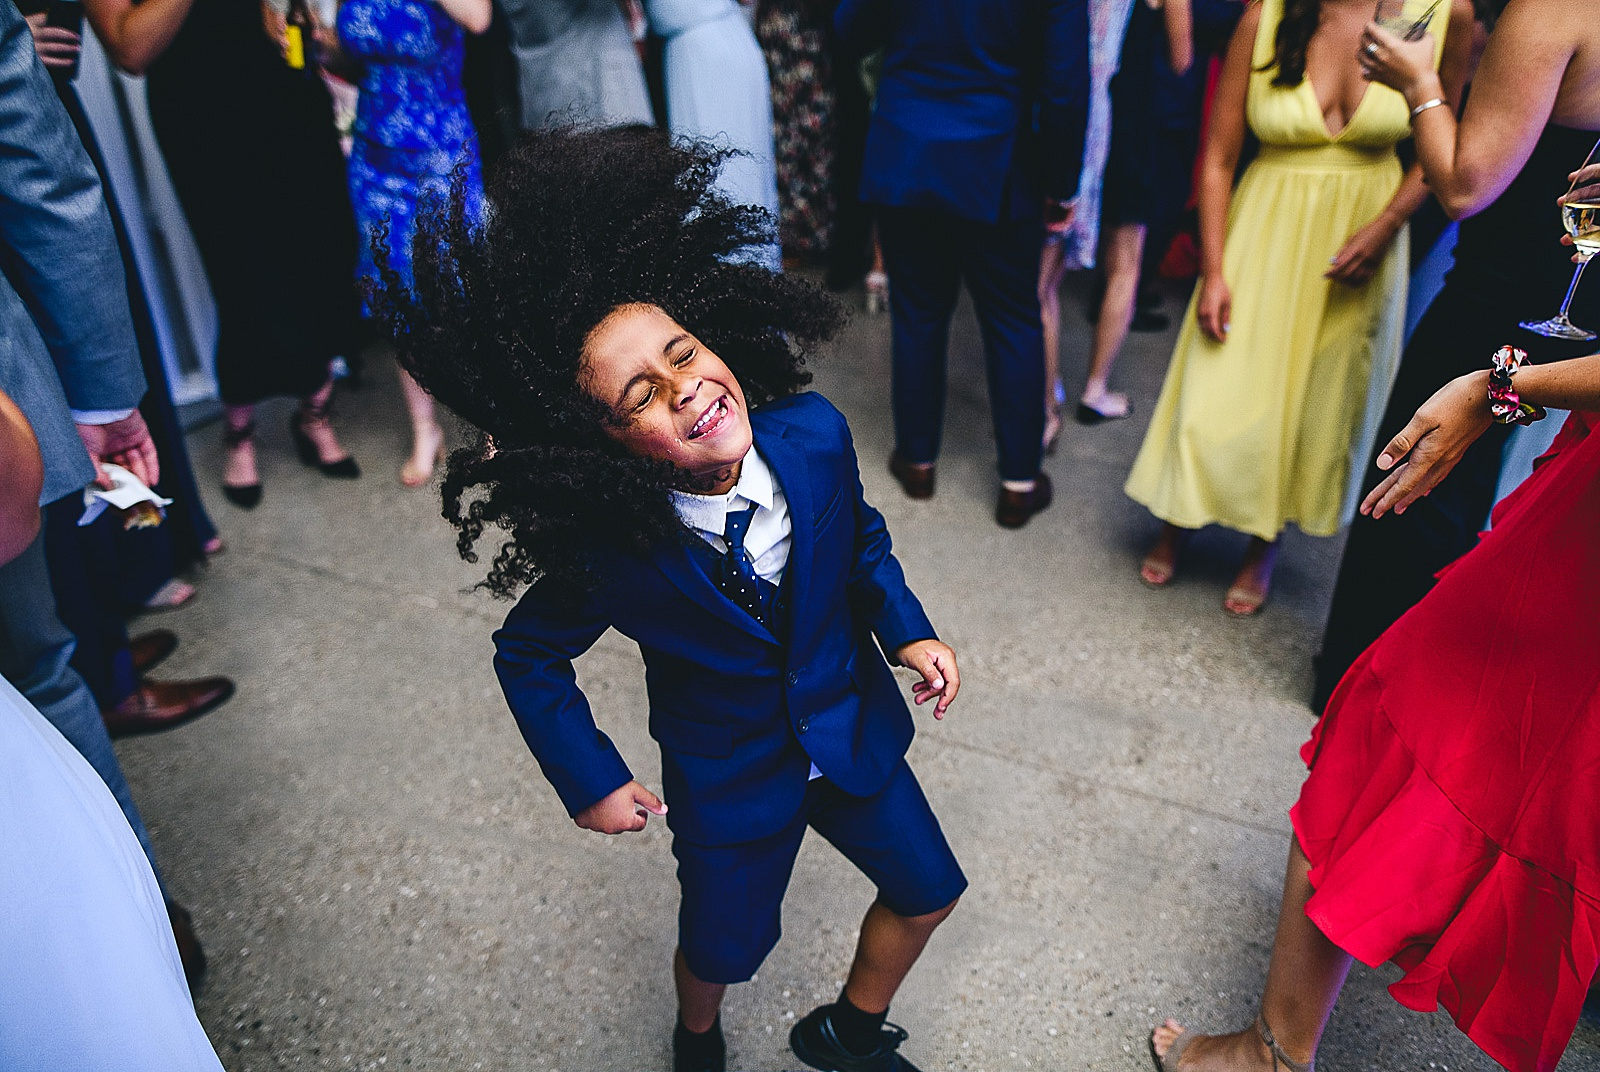 51 fun reception photos at chez - Audrey + Jake's Beautiful Chicago Wedding at Chez